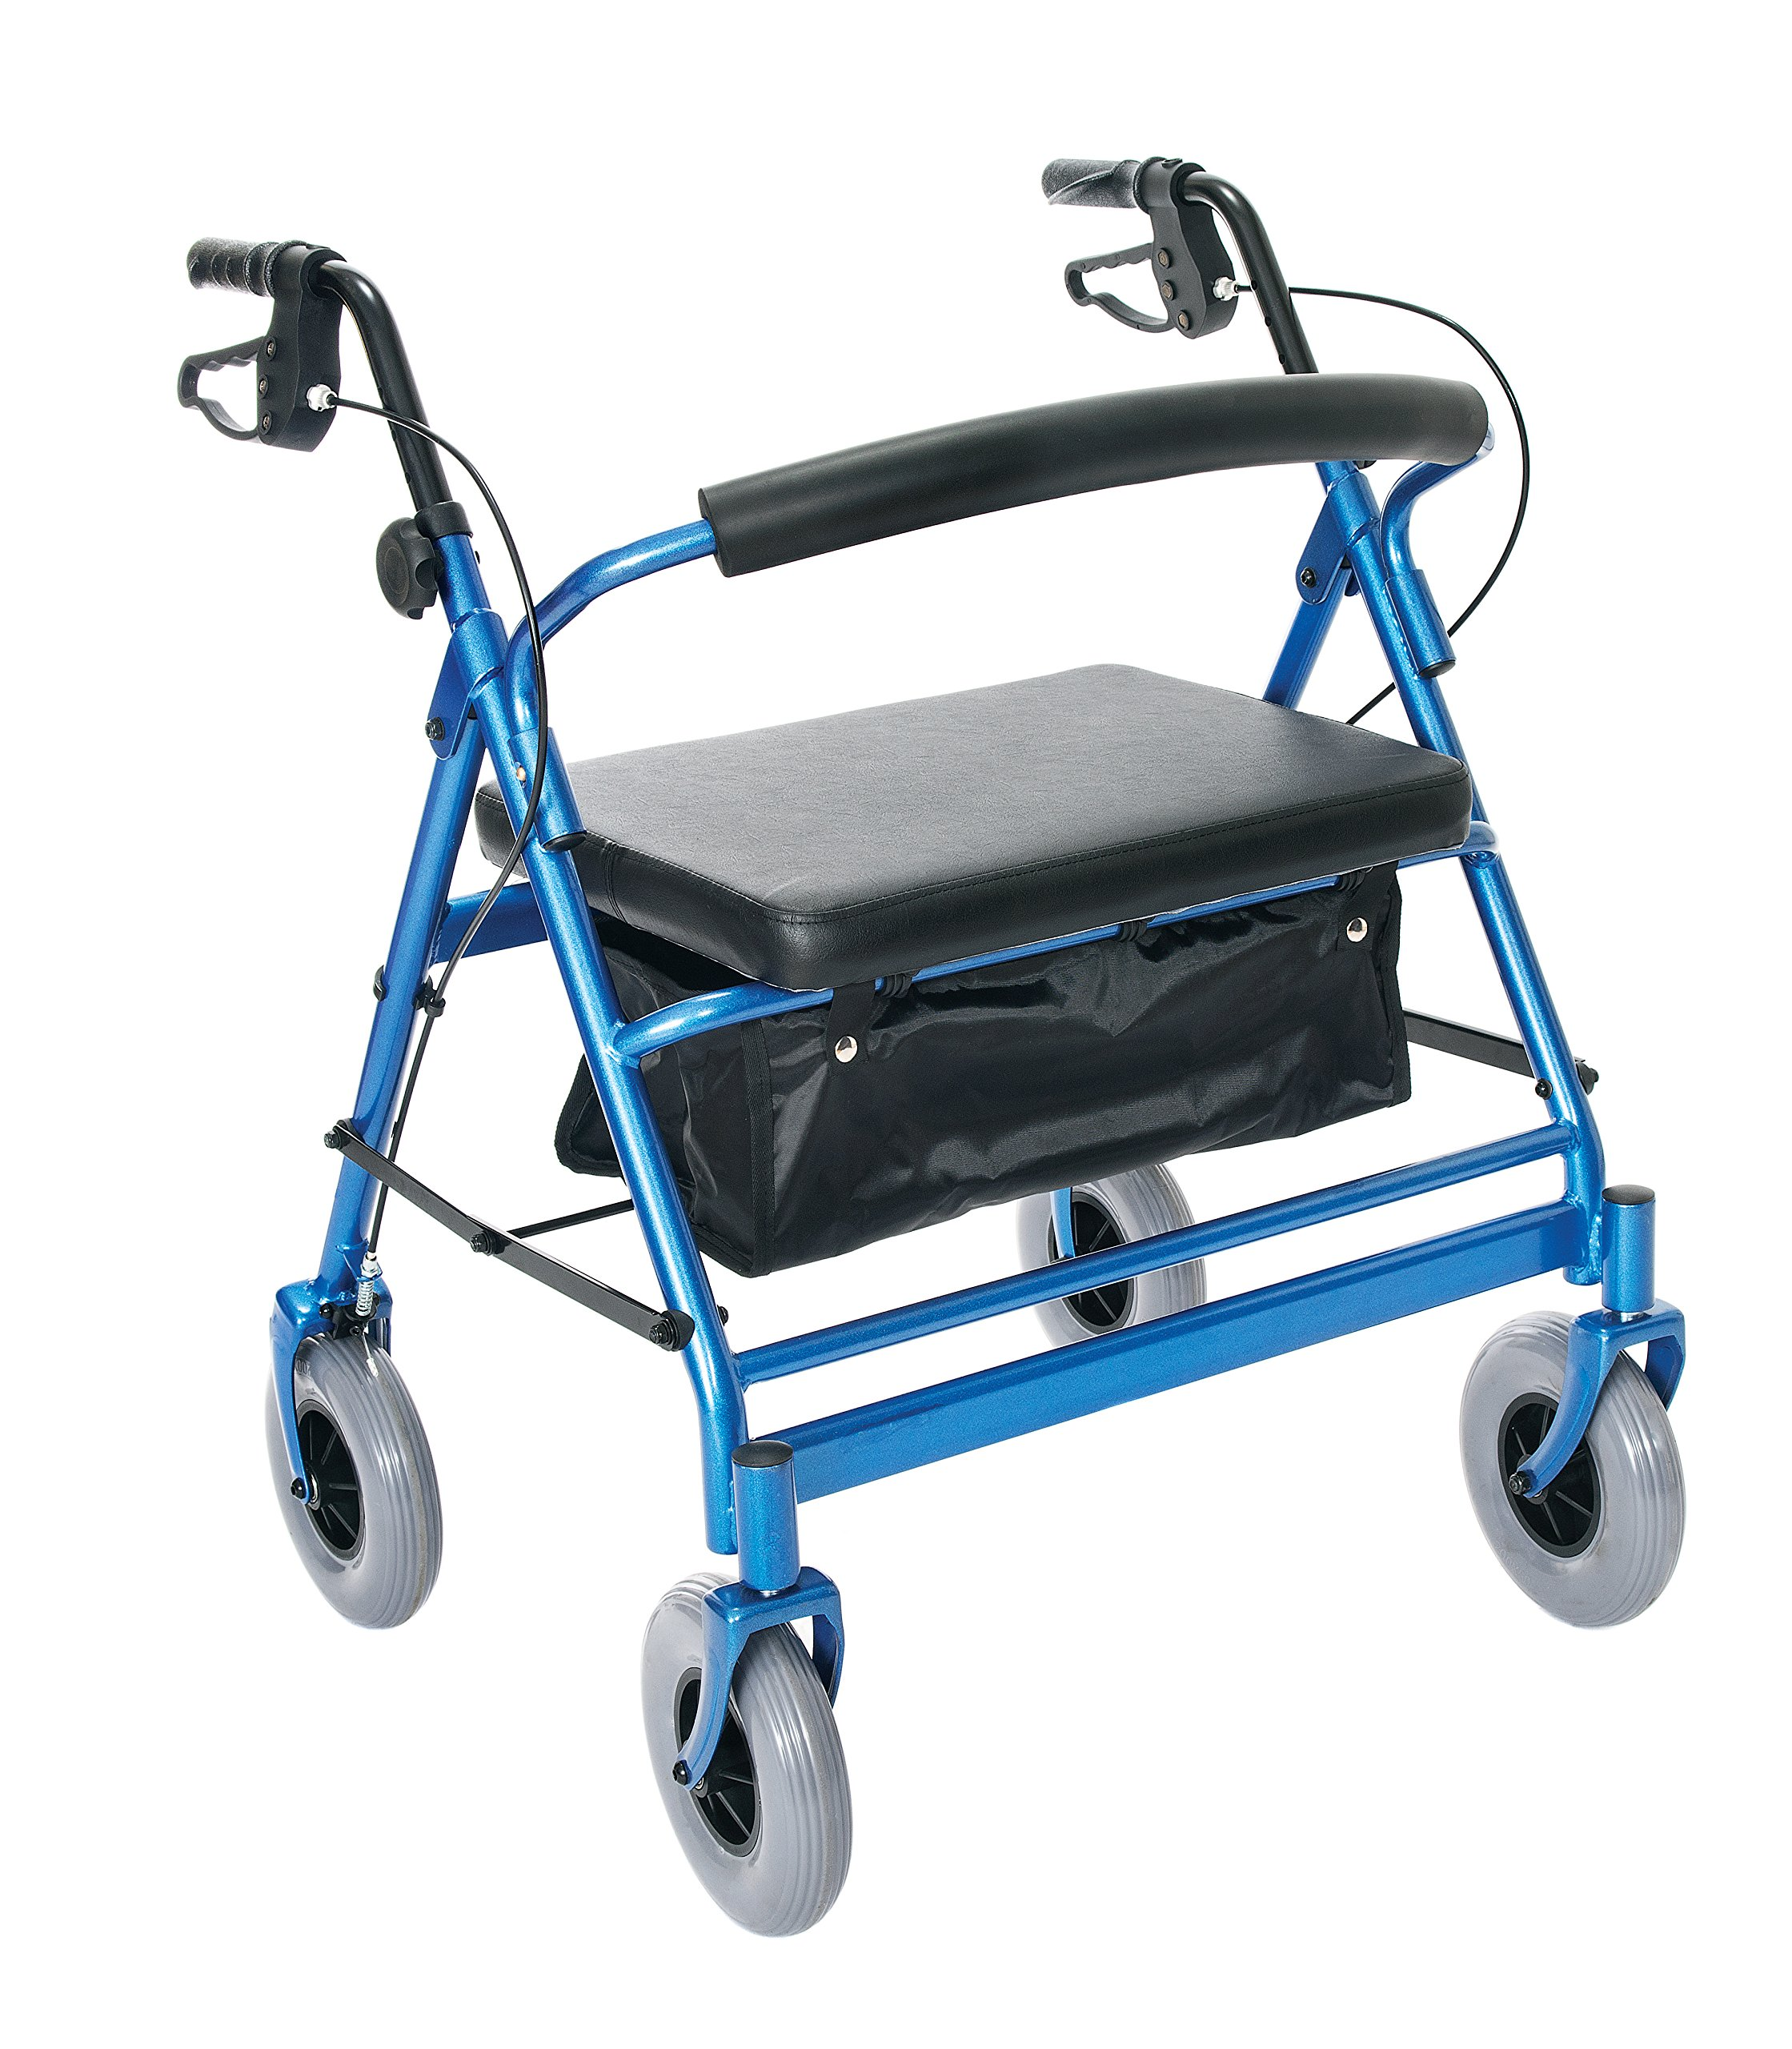 Essential Medical Supply Endurance HD Heavy Duty Walker with 500lb Weight Capacity by Essential Medical Supply